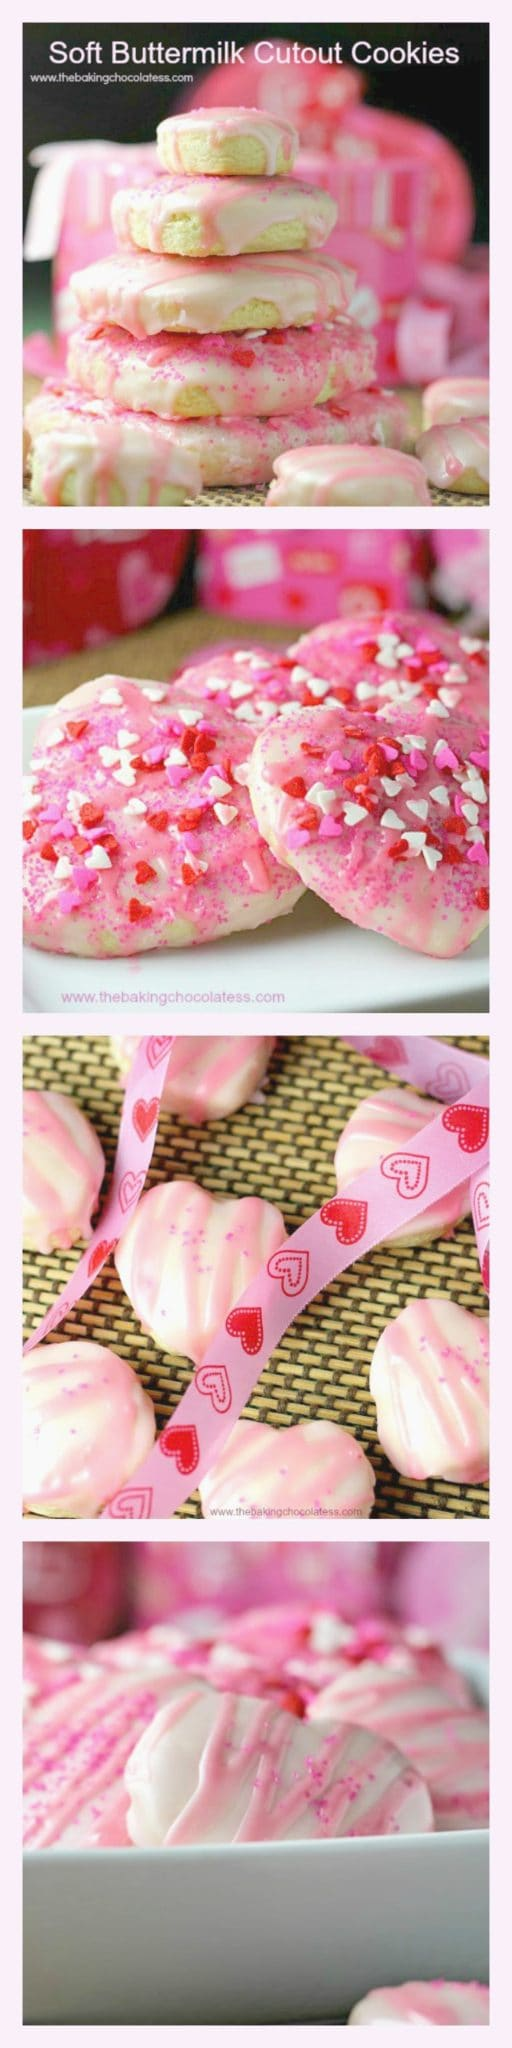 Soft Buttermilk {Cutout} Cookies & Icing!